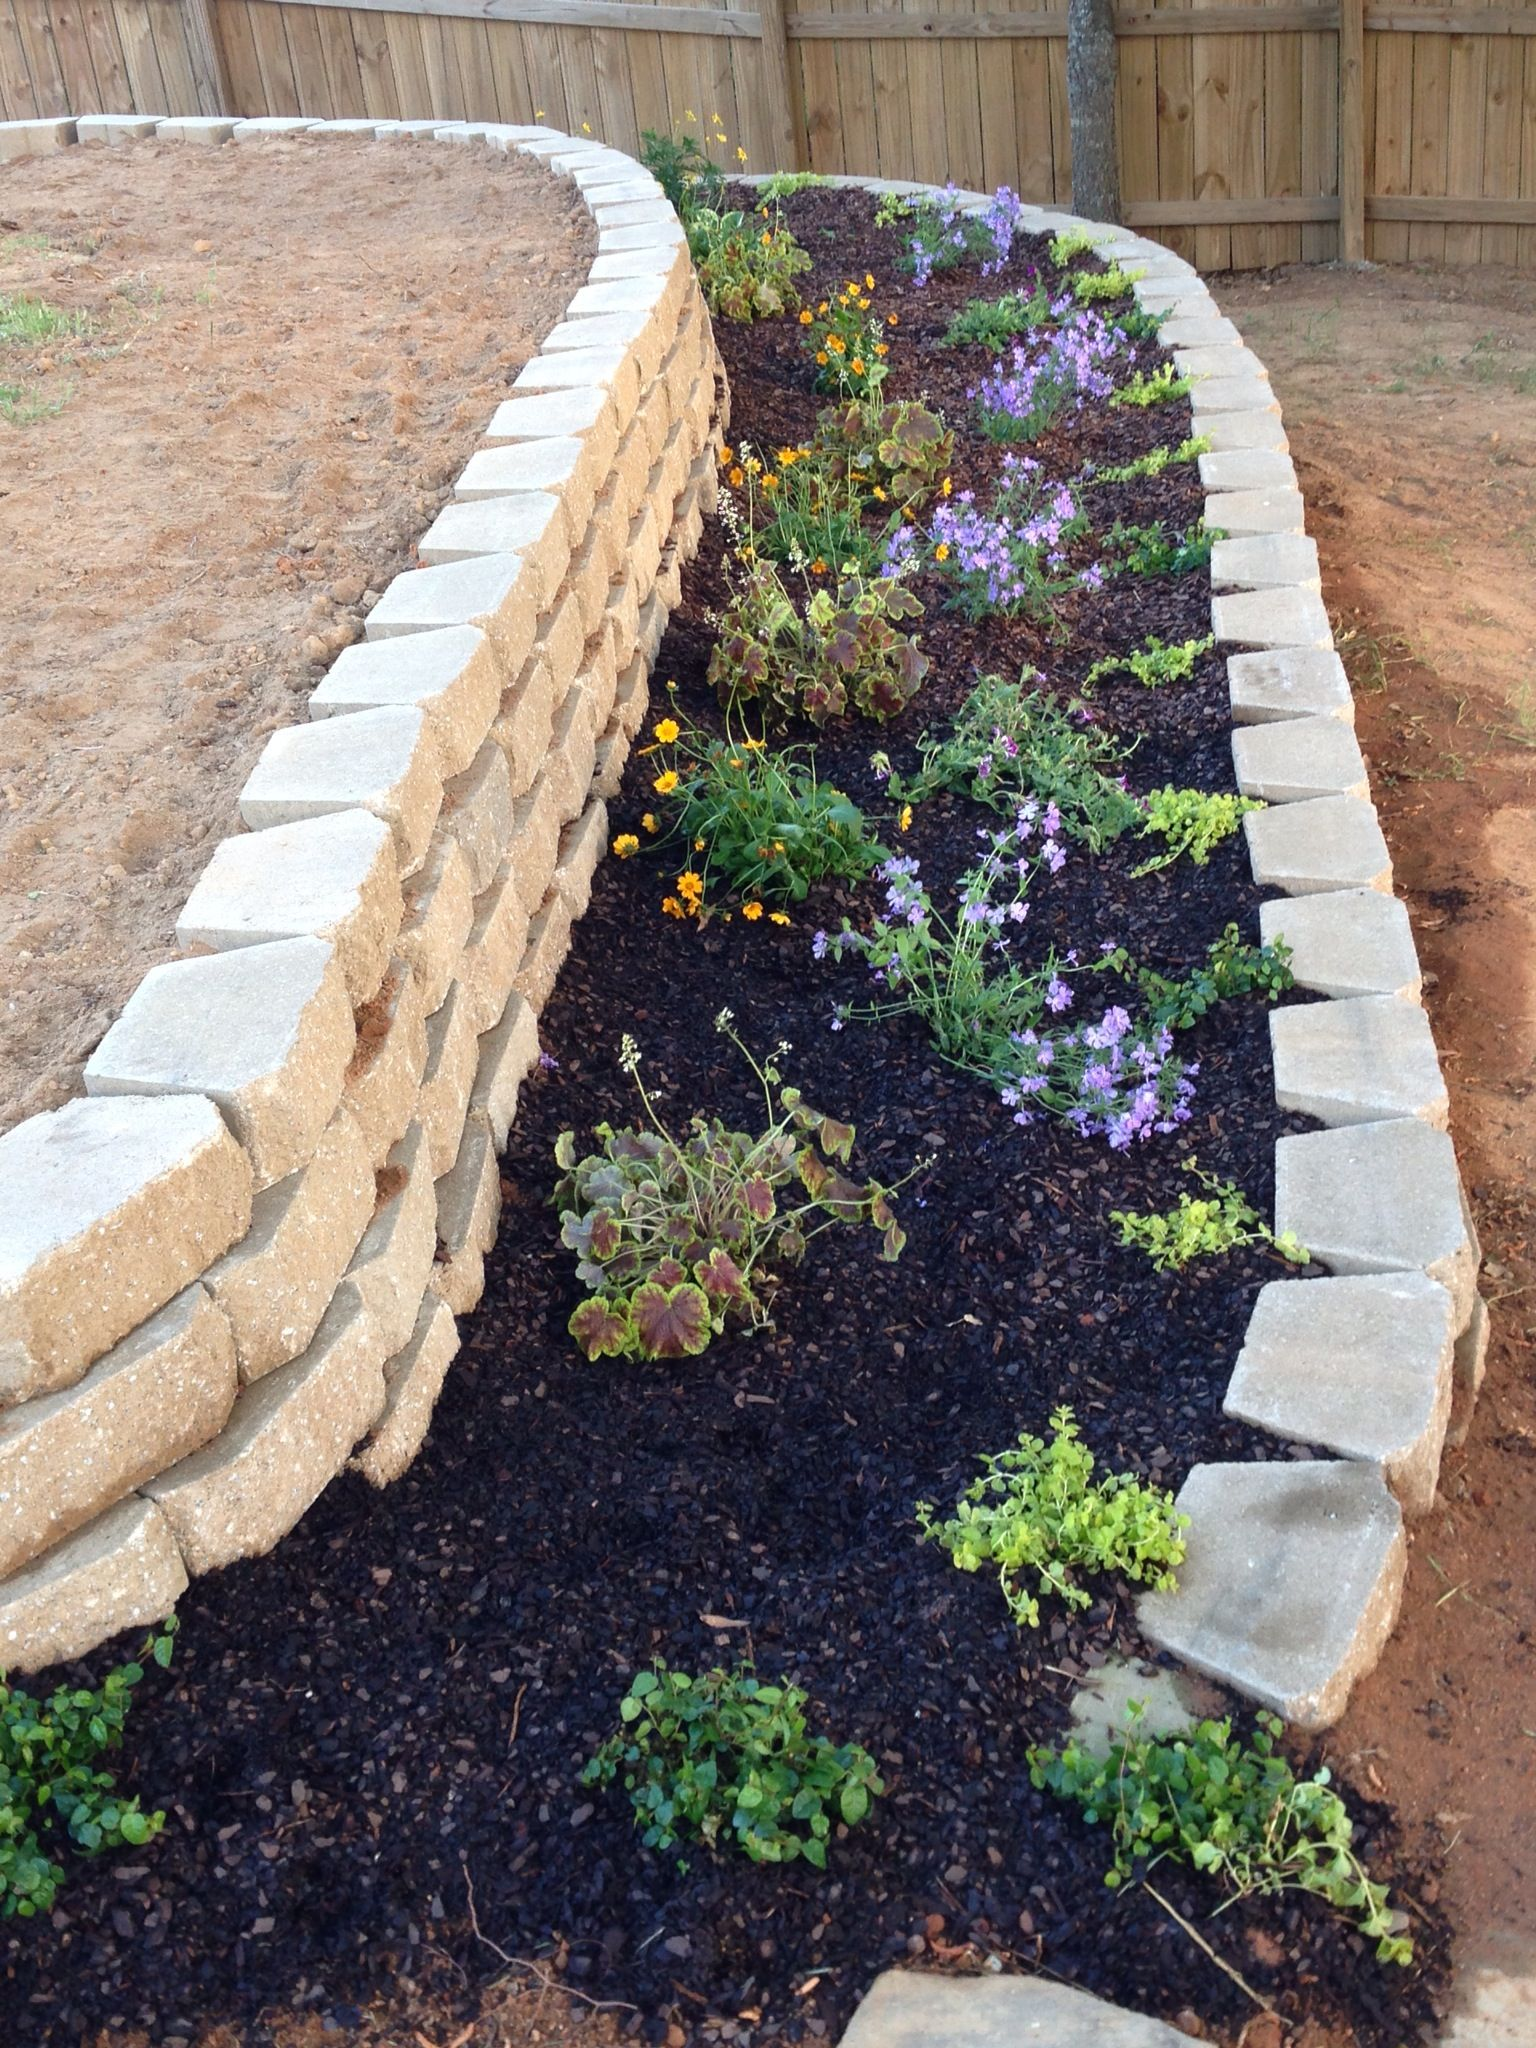 Landscaping Ideas For Uneven Yard : Retainer wall flower bed for an uneven backyard back yard in progress